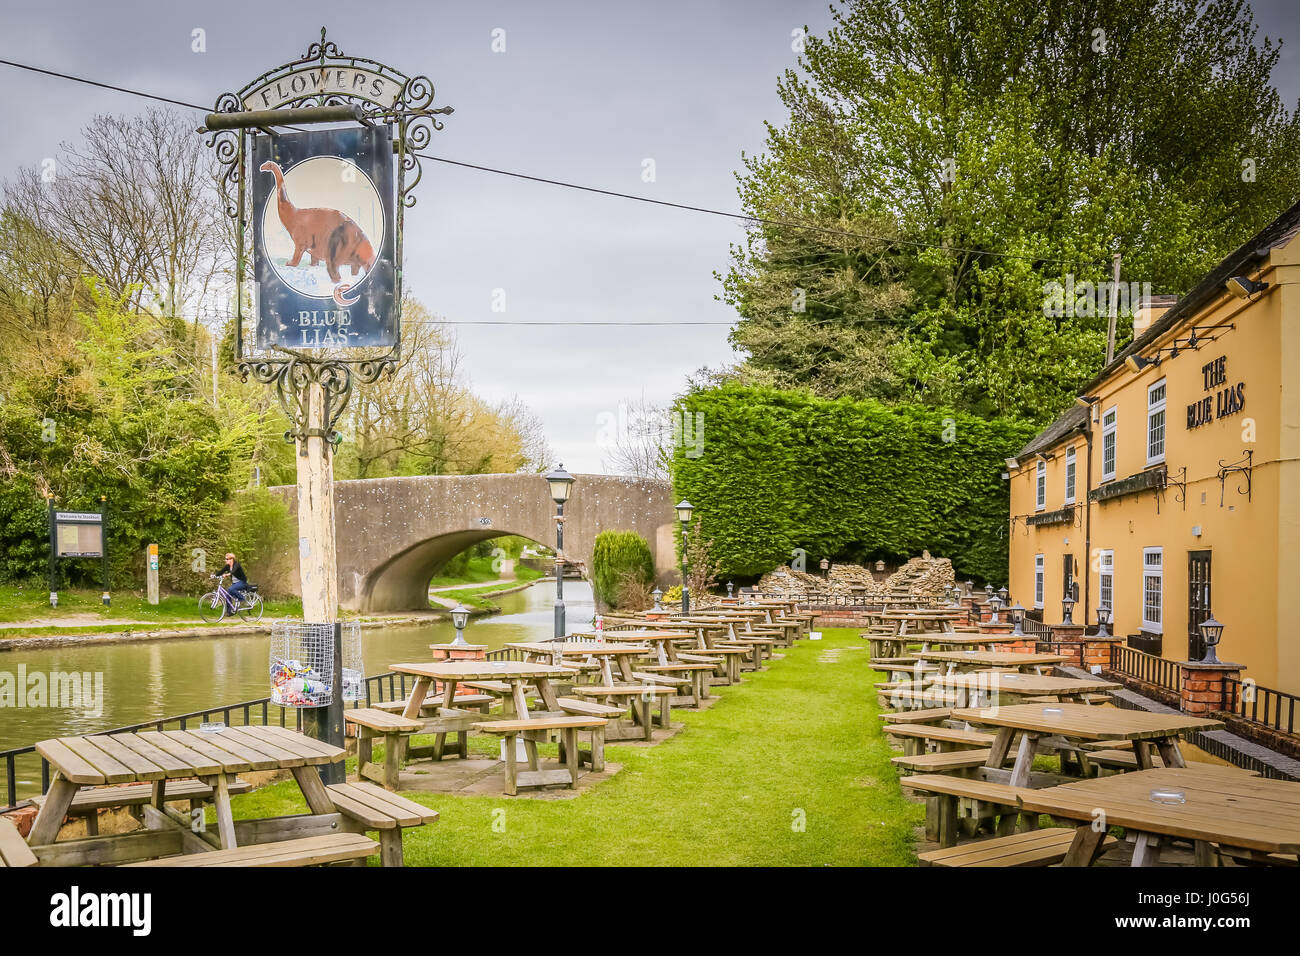 The Blue Lias pub in Stockton,Warwickshire - Stock Image